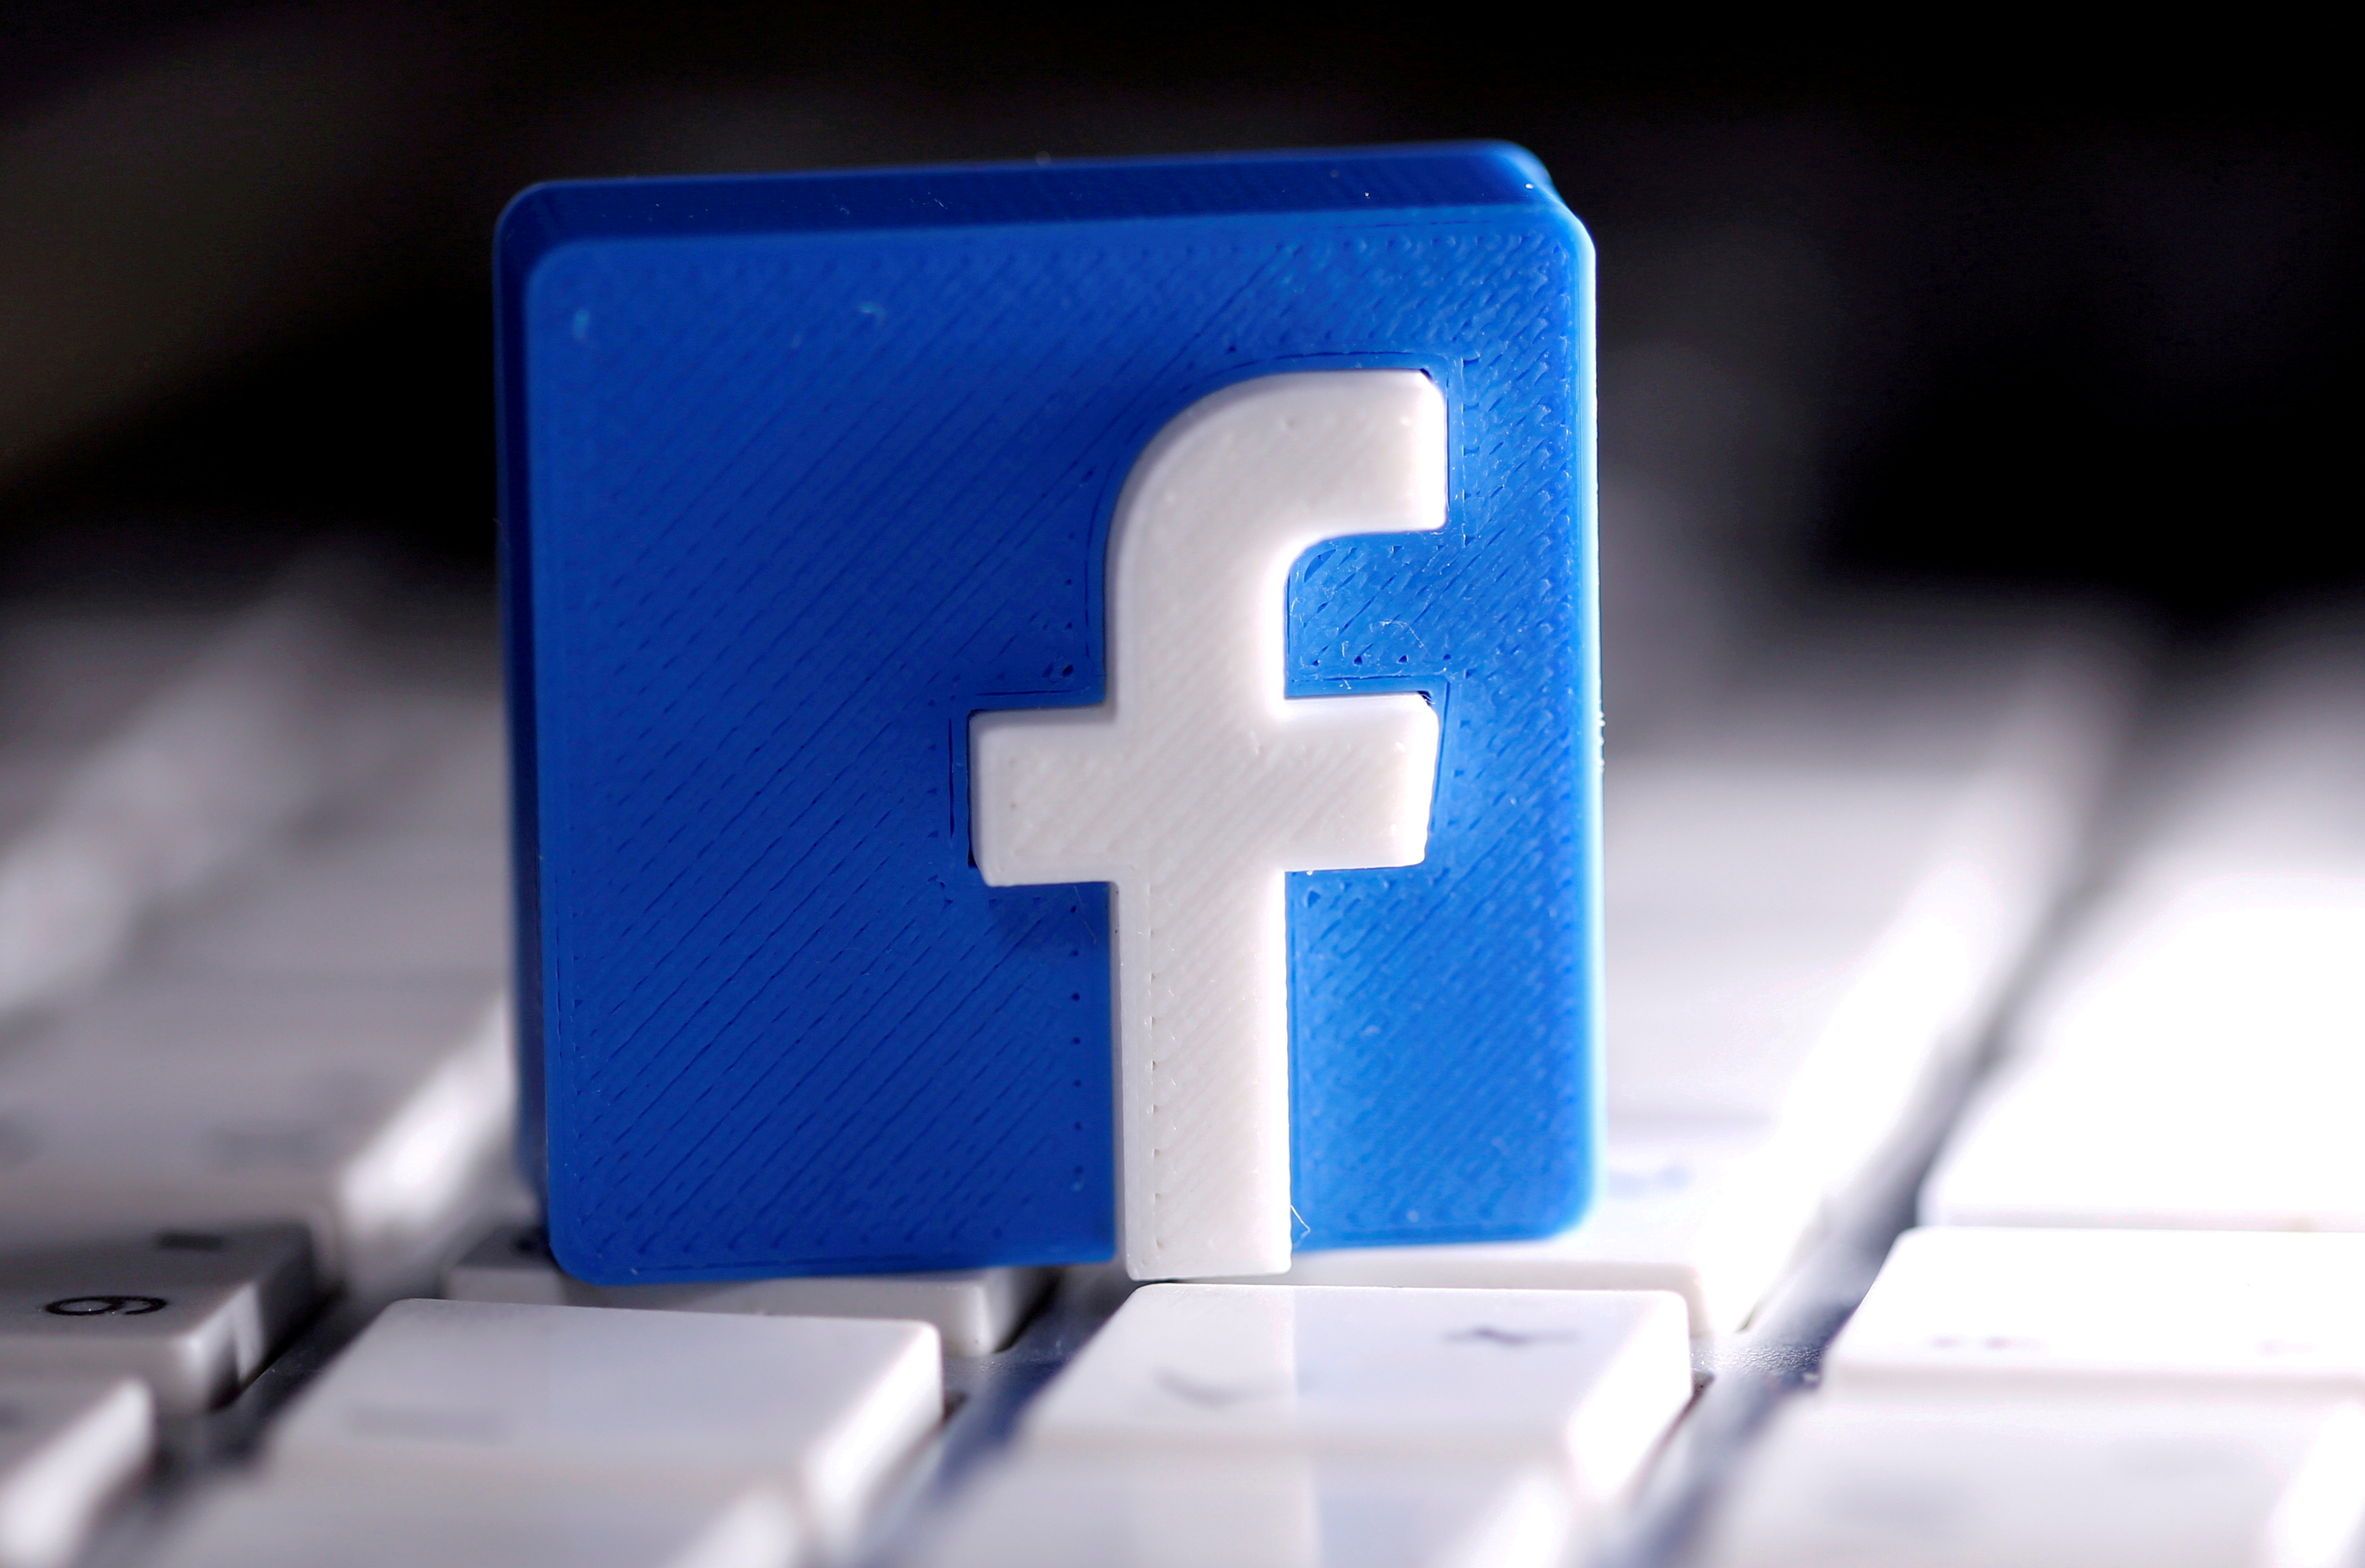 A 3D-printed Facebook logo is seen placed on a keyboard in this illustration taken March 25, 2020. REUTERS/Dado Ruvic/Illustration/File Photo